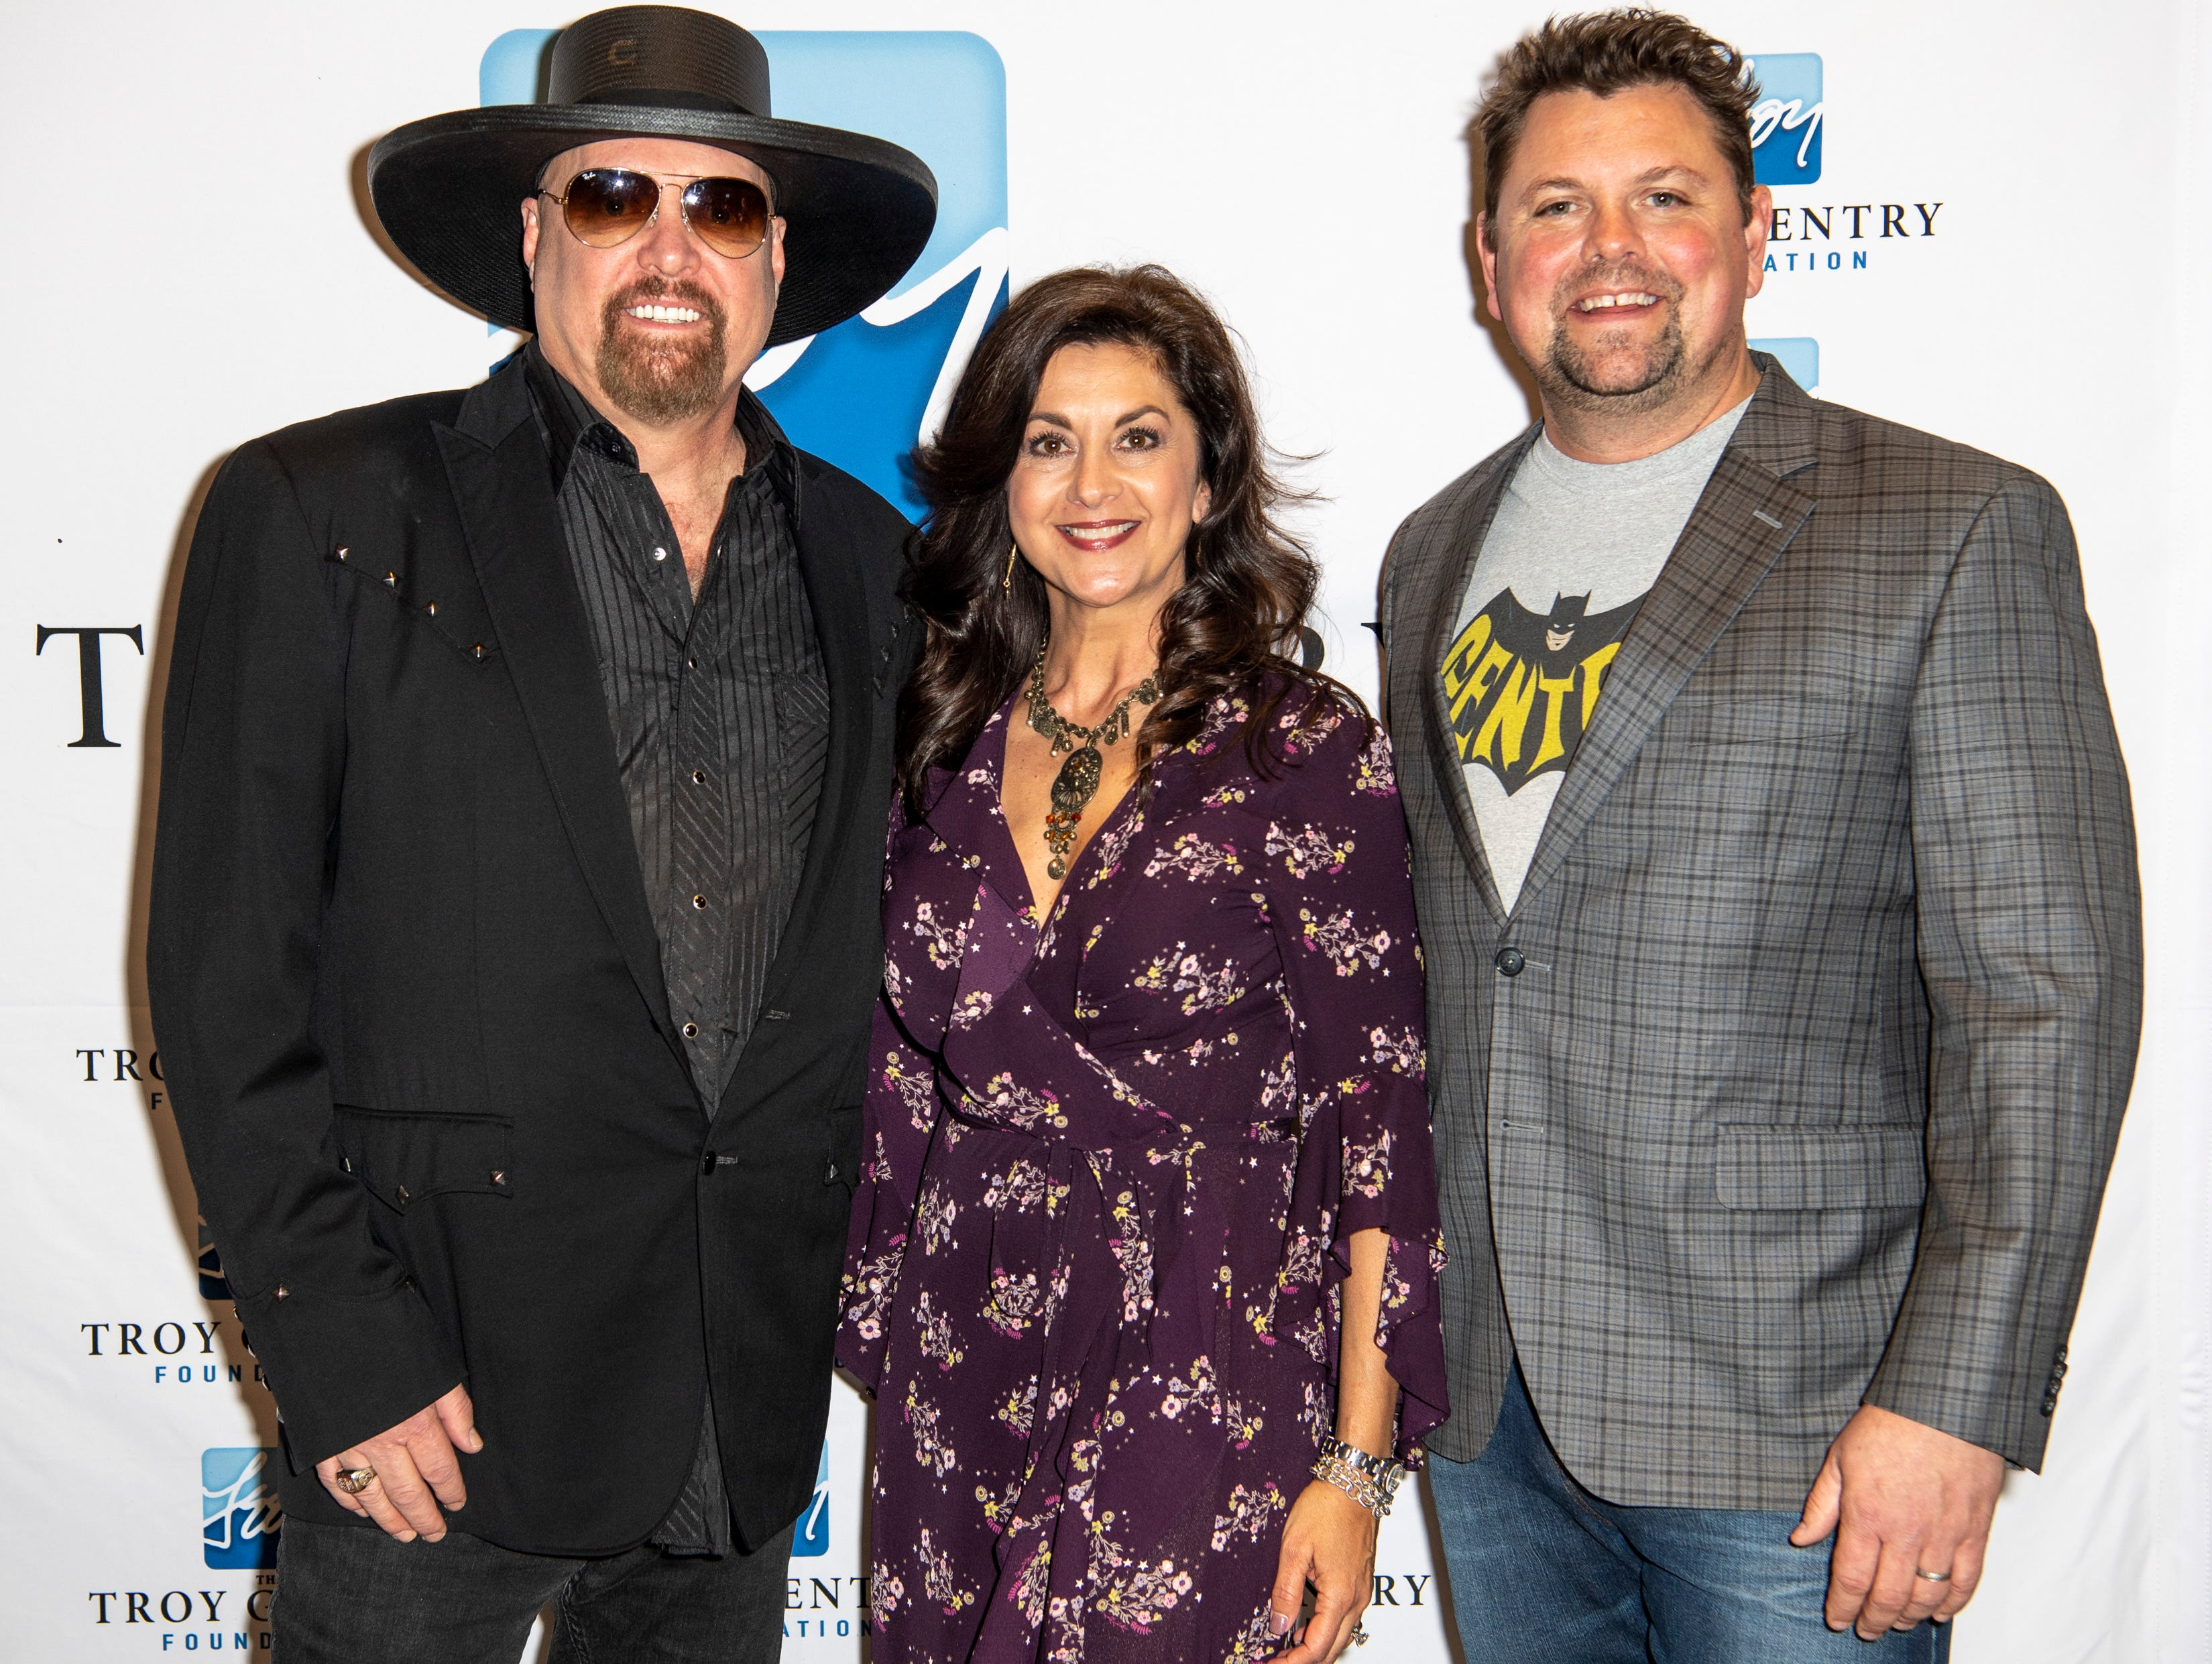 Eddie Montgomery, Angie Gentry, and Storme Warren on the red carpet before the C'Ya On The Flipside Benefit Concert at the Grand Ole Opry House in Nashville, Tenn., Wednesday, Jan. 9, 2019.